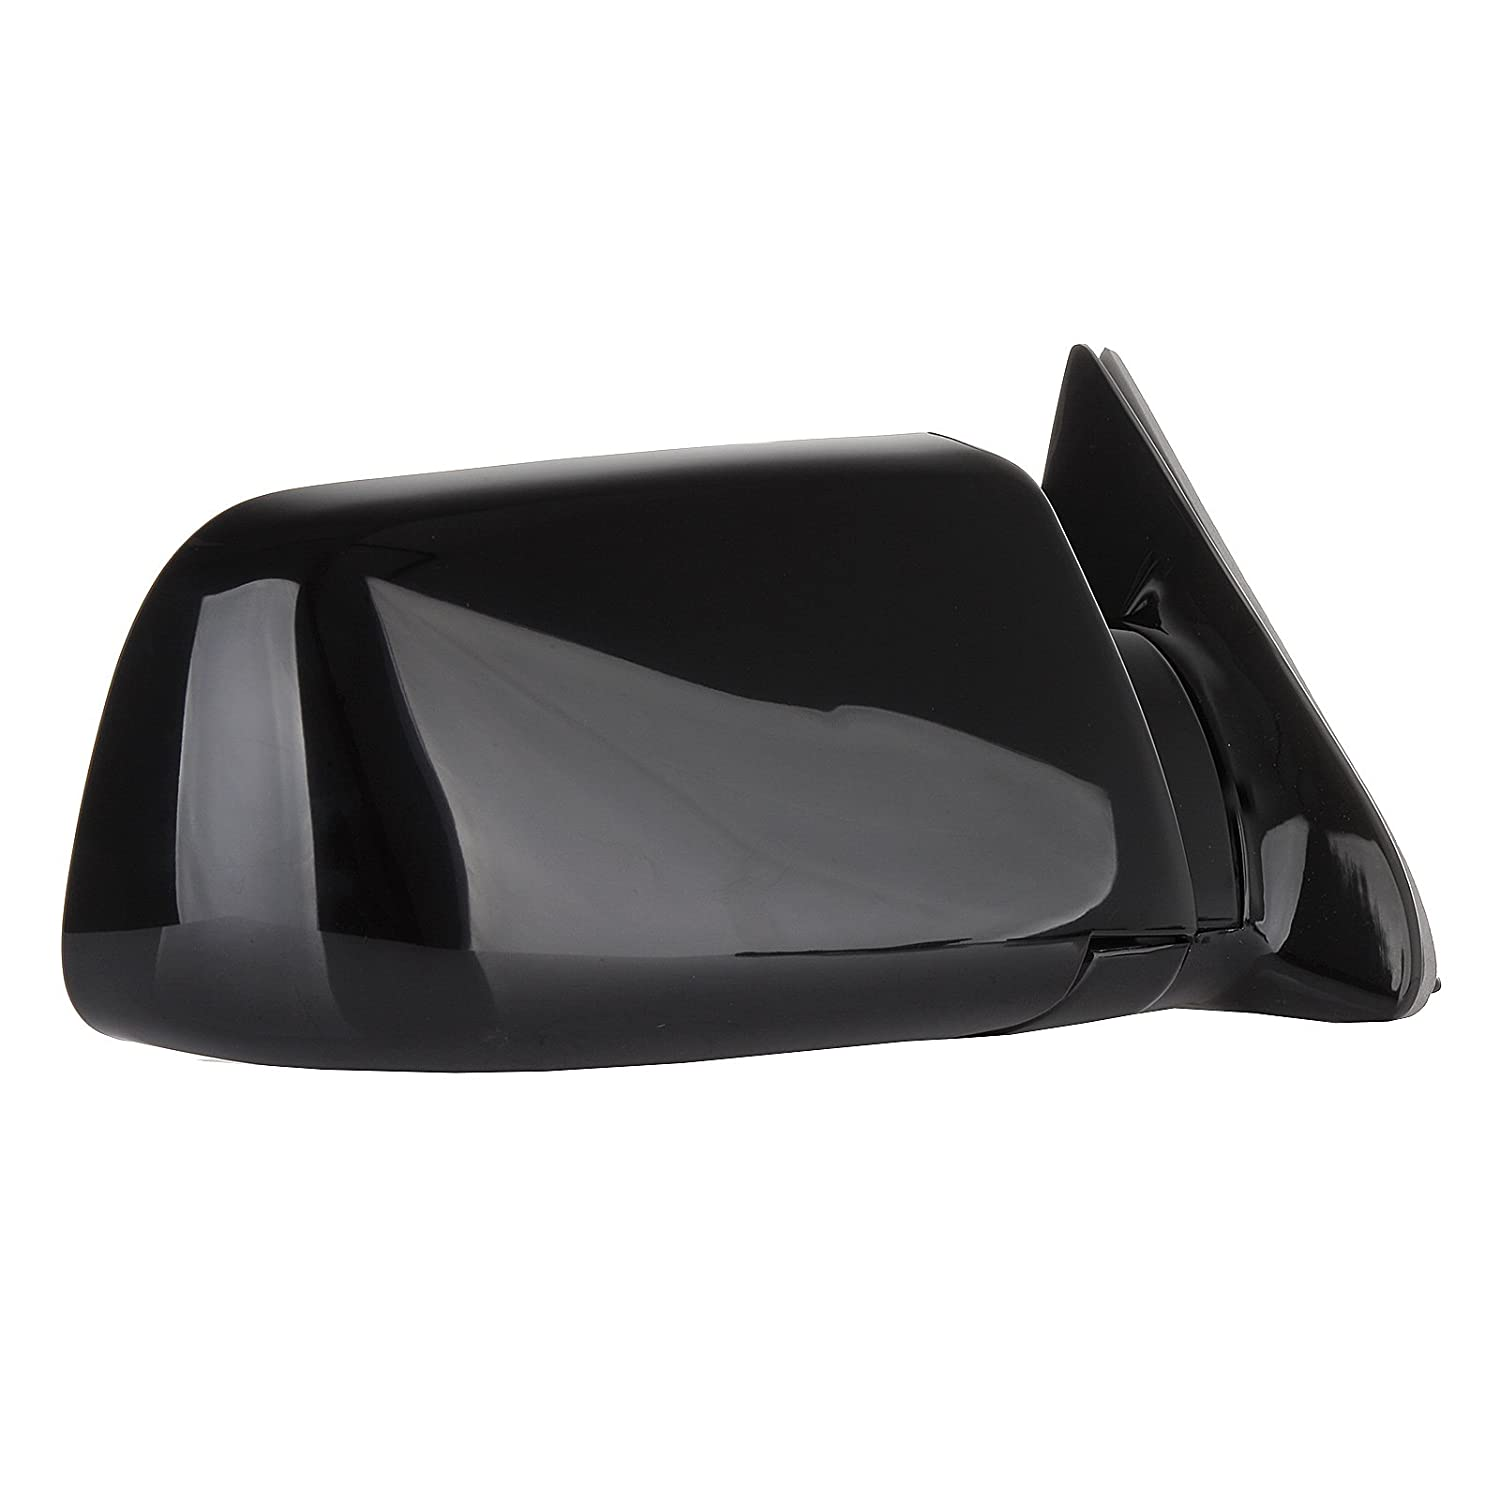 For Chevy Towing Mirrors Driver Side for 1988-1998 Chevrolet GMC Pickup Truck 1992-1994 Chevrolet Blazer GMC Jimmy 1995-1998 Chevrolet Tahoe MC Yukon with Power Control 15764757 15764758